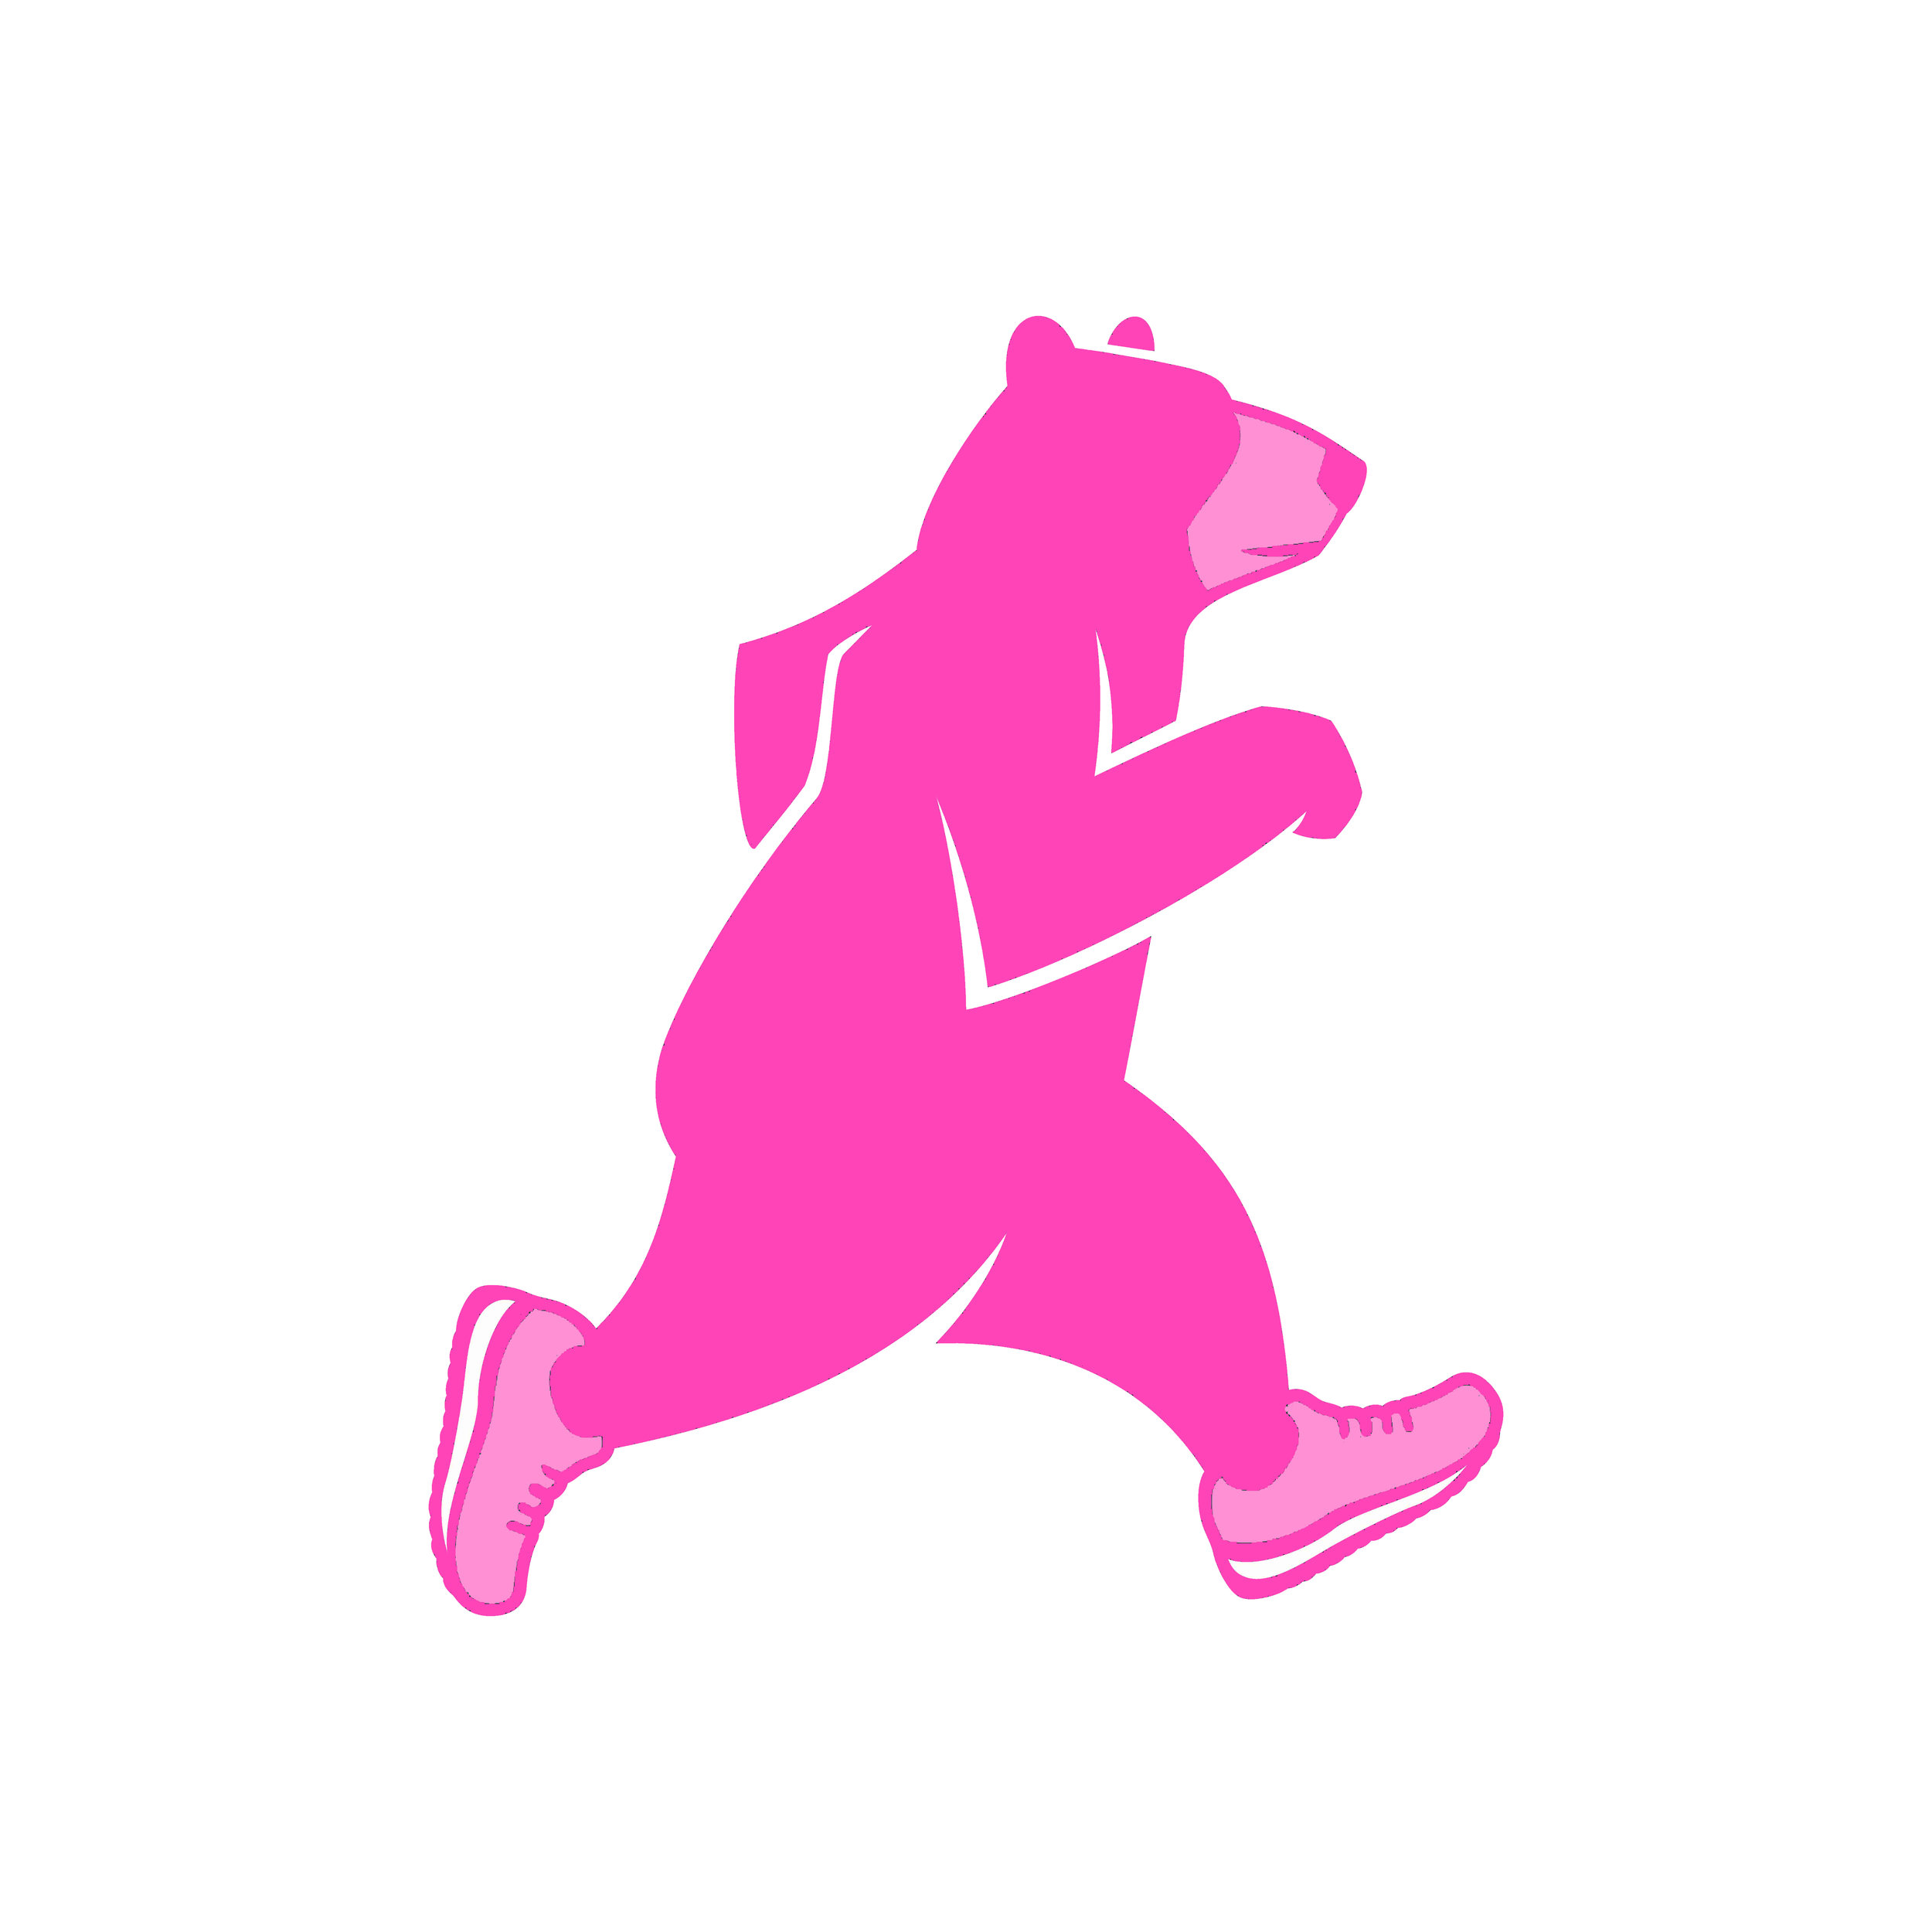 Girls on the Run - SOLD OUT! Purchase a limited edition Pink Ted sticker and all $3 will be donated to Girls on the Run of SE Tennessee.